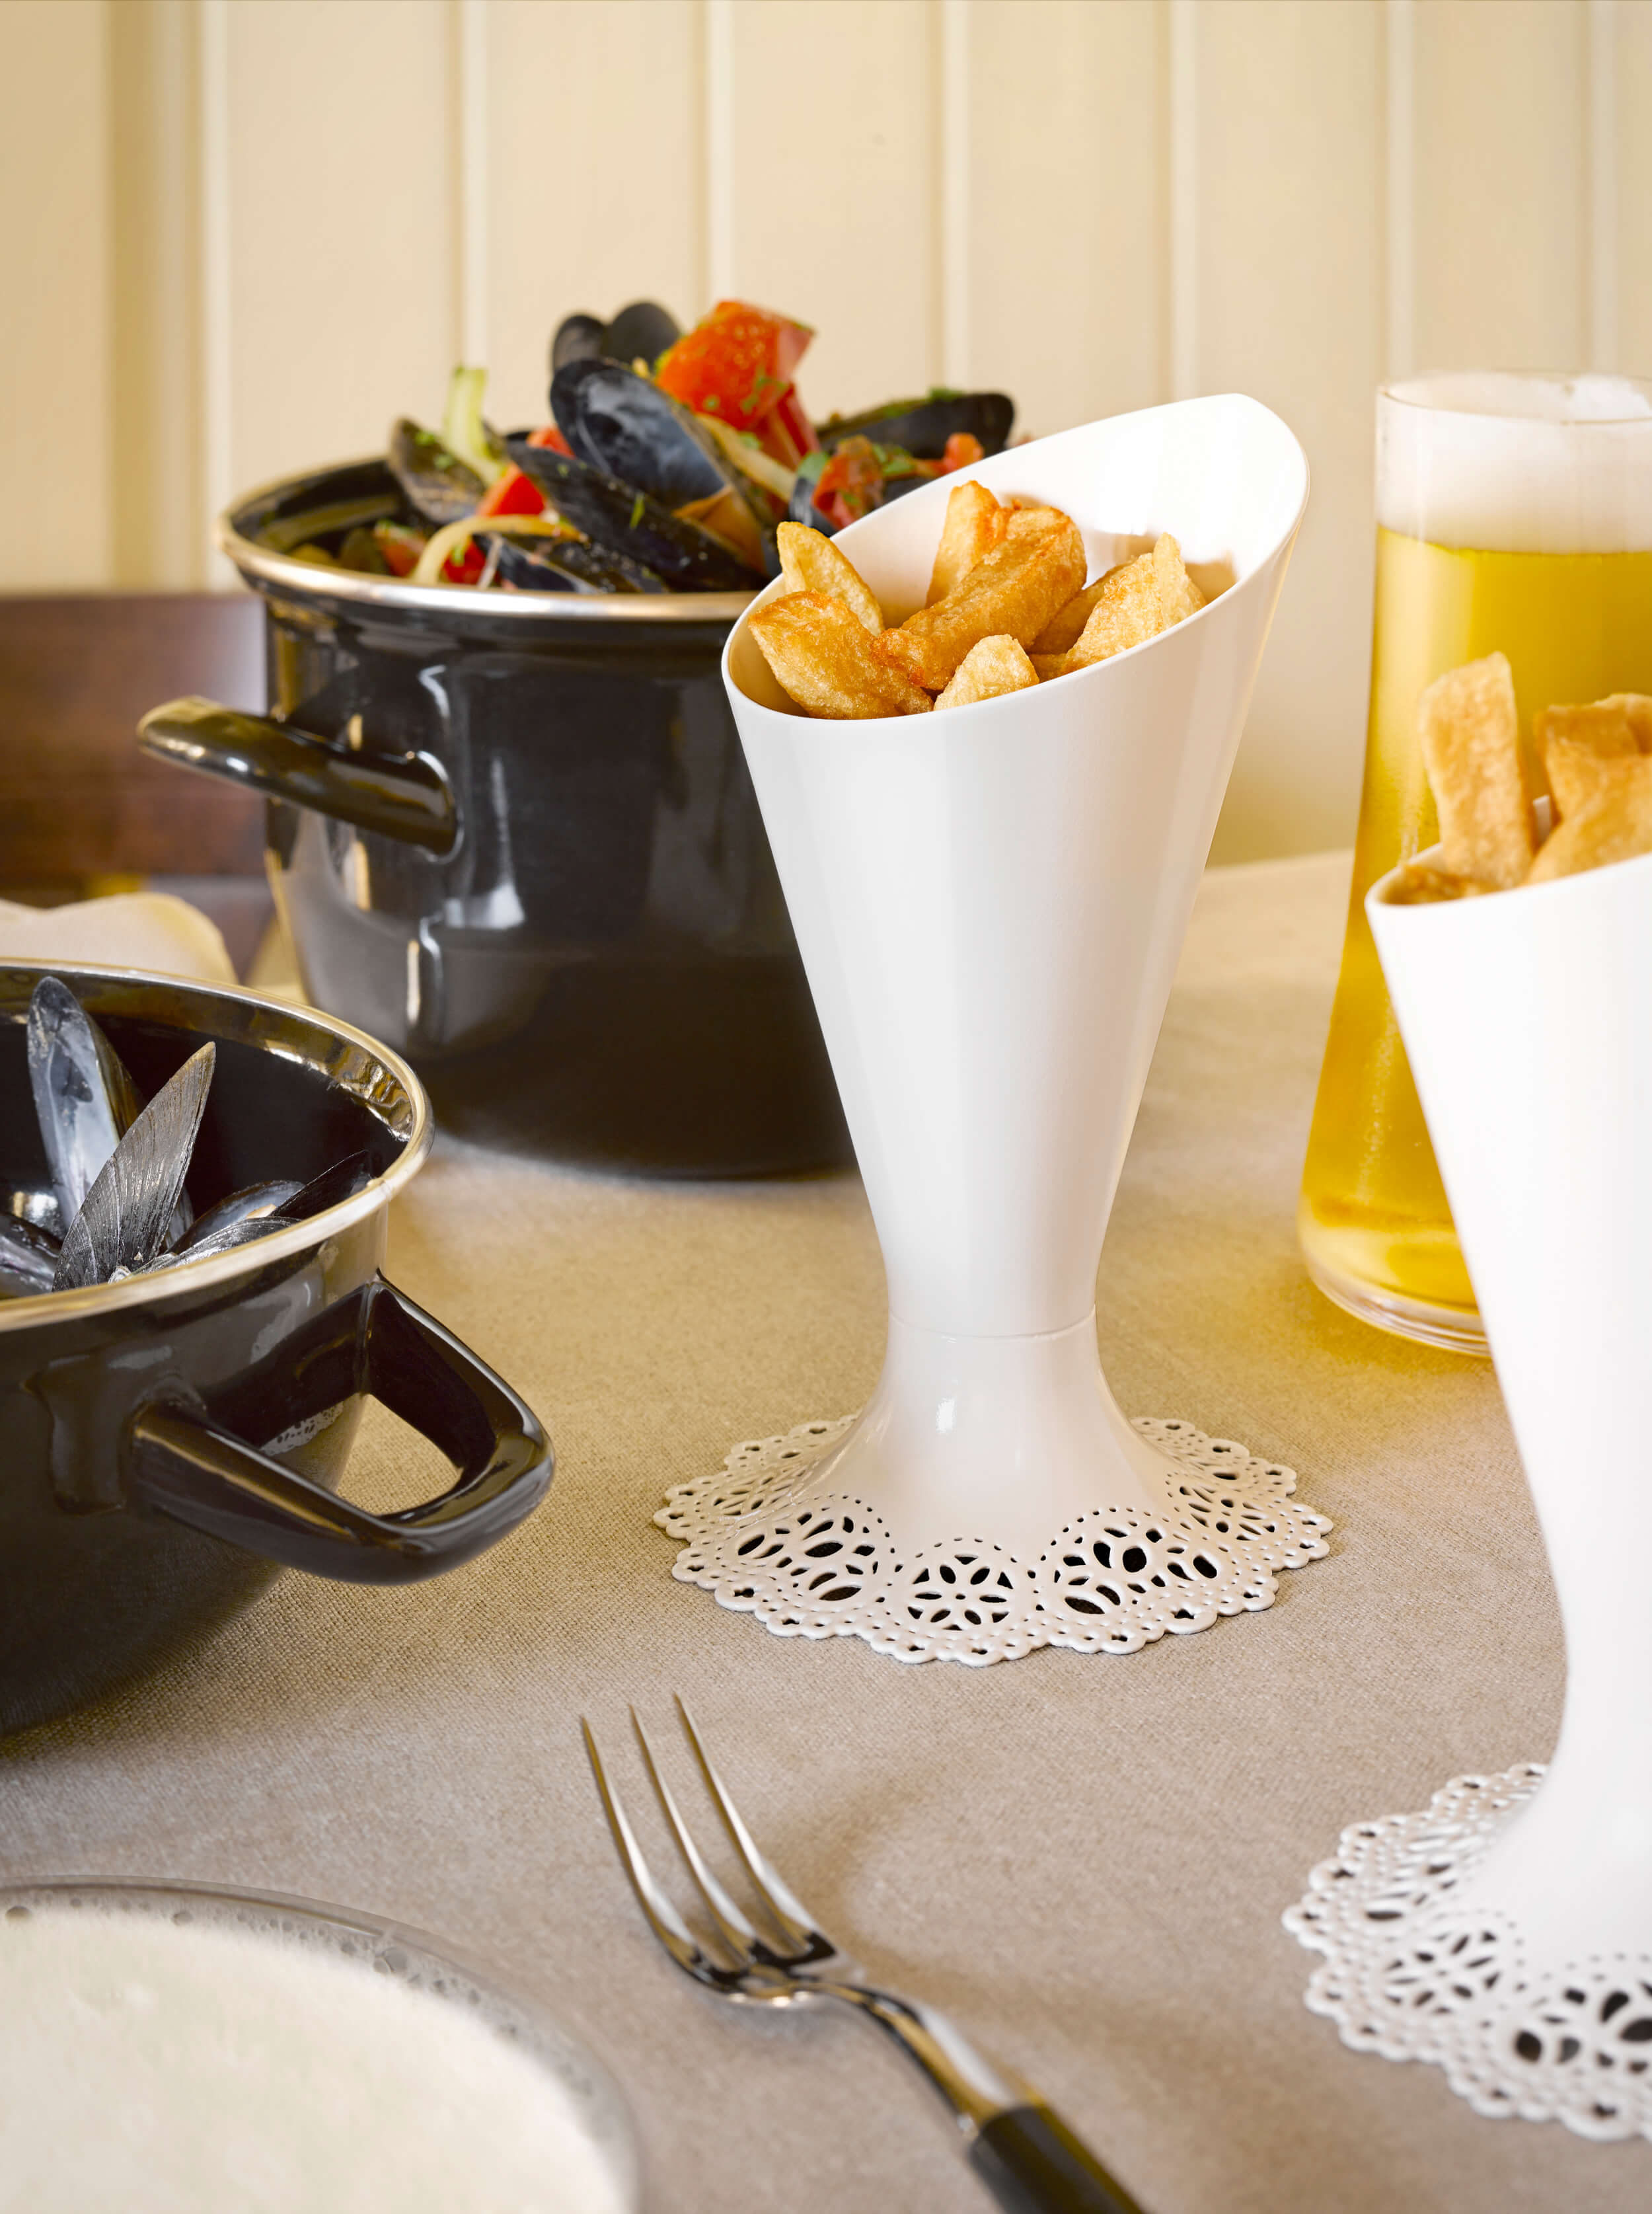 Alessi-Dentelle- fries-holder-with mussels.jpg